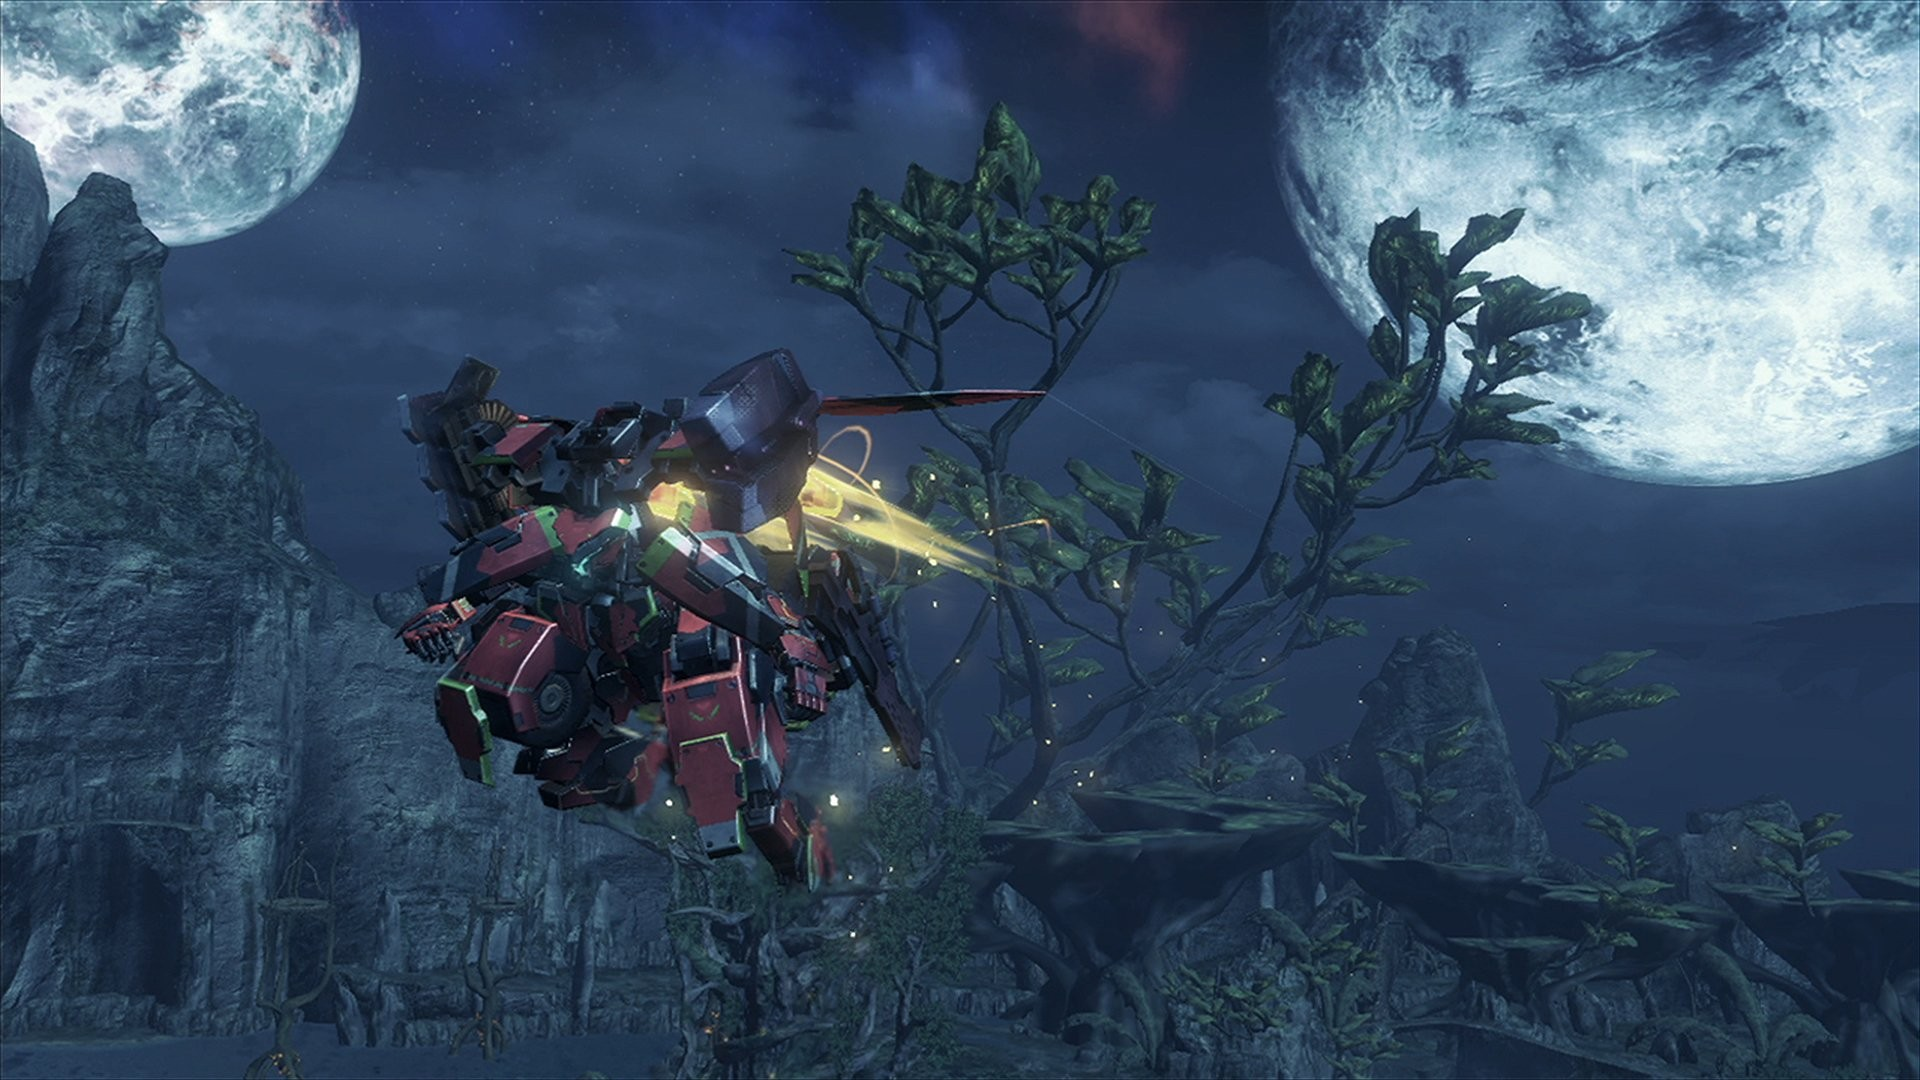 Xenoblade Wallpaper Download Free Stunning Hd Wallpapers For